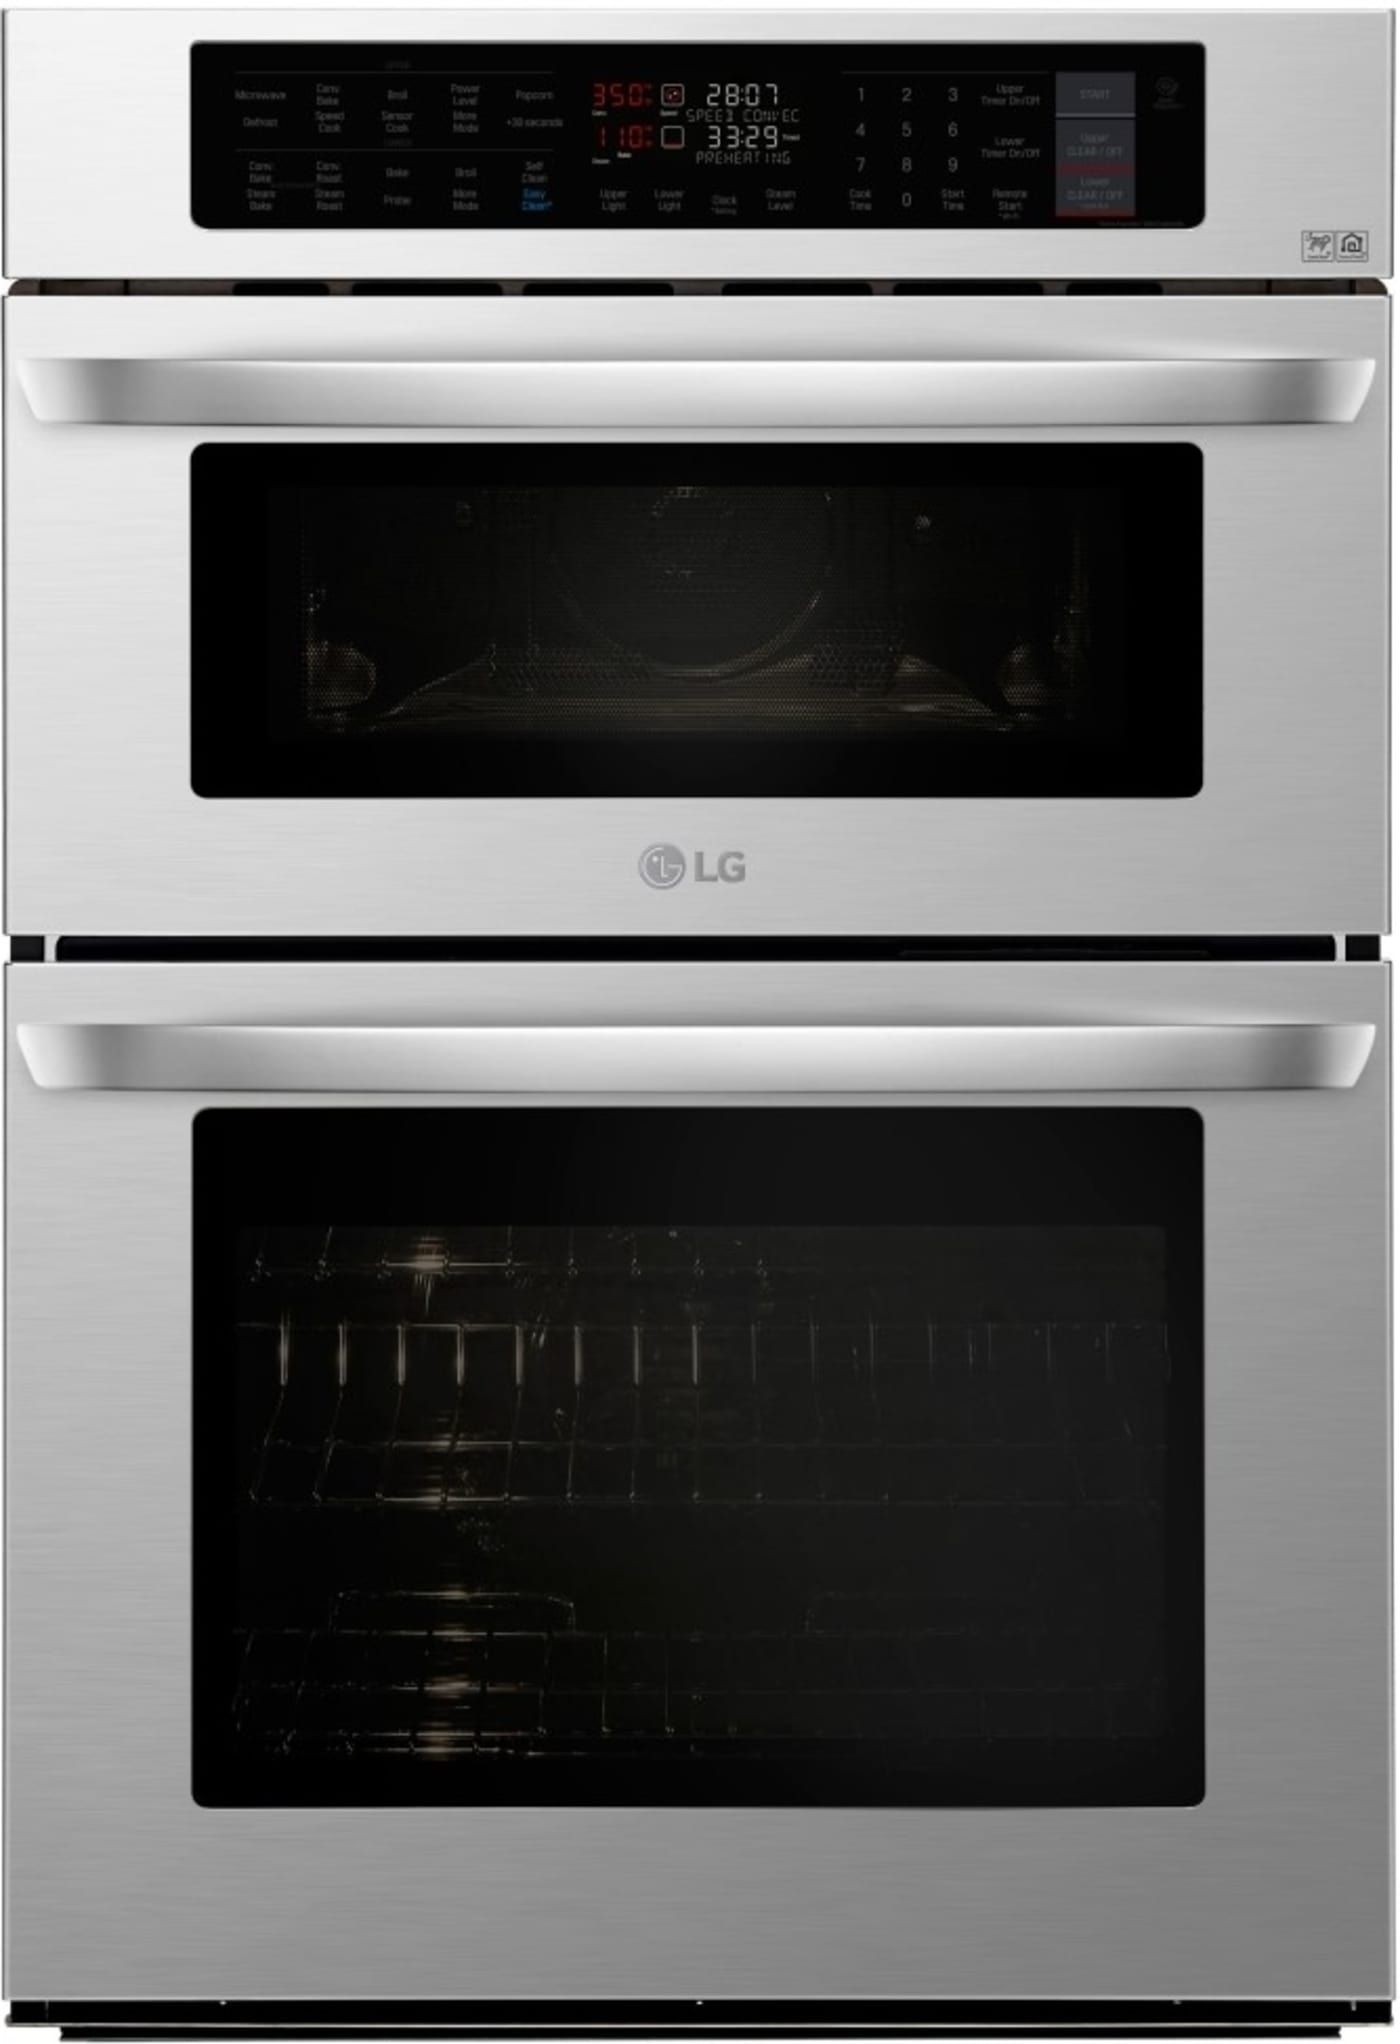 Lwc3063st By Lg Double Wall Ovens Goedekers Com Wall Oven Wall Oven Microwave Combo Combination Wall Oven